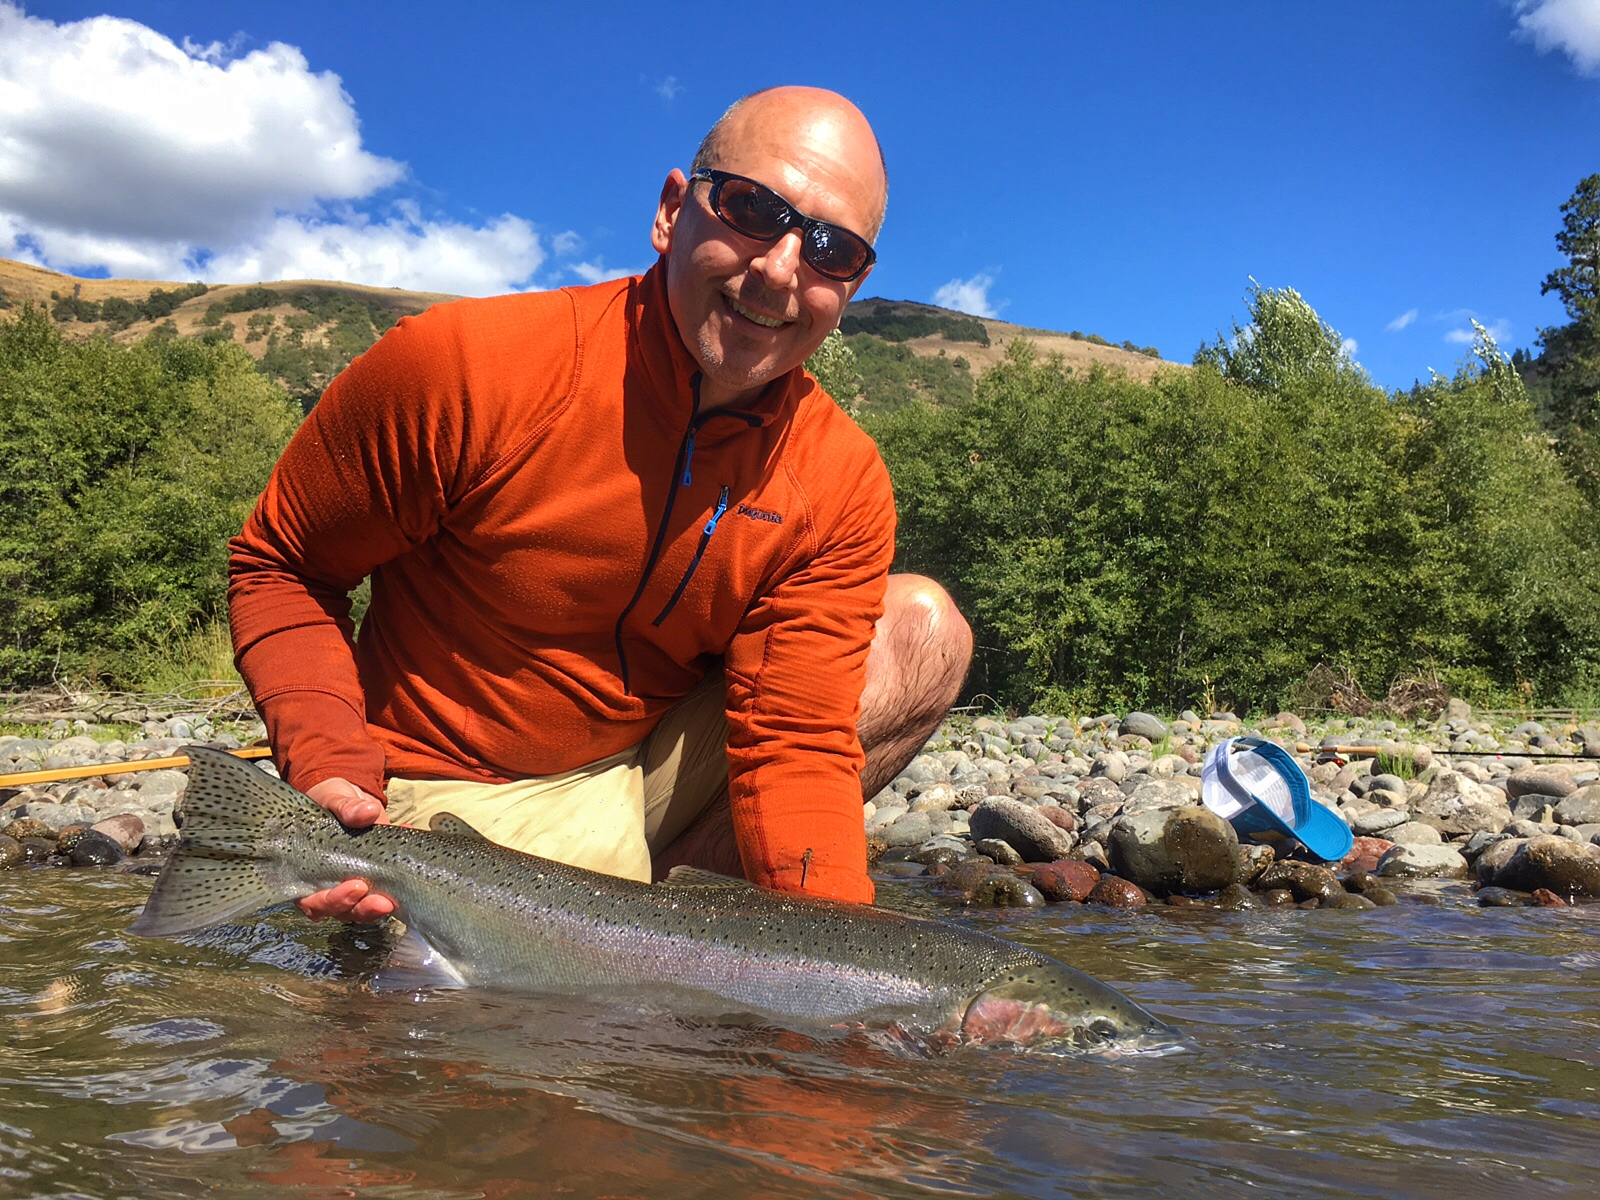 The evening hatch reports klickitat river report the for Klickitat river fishing report